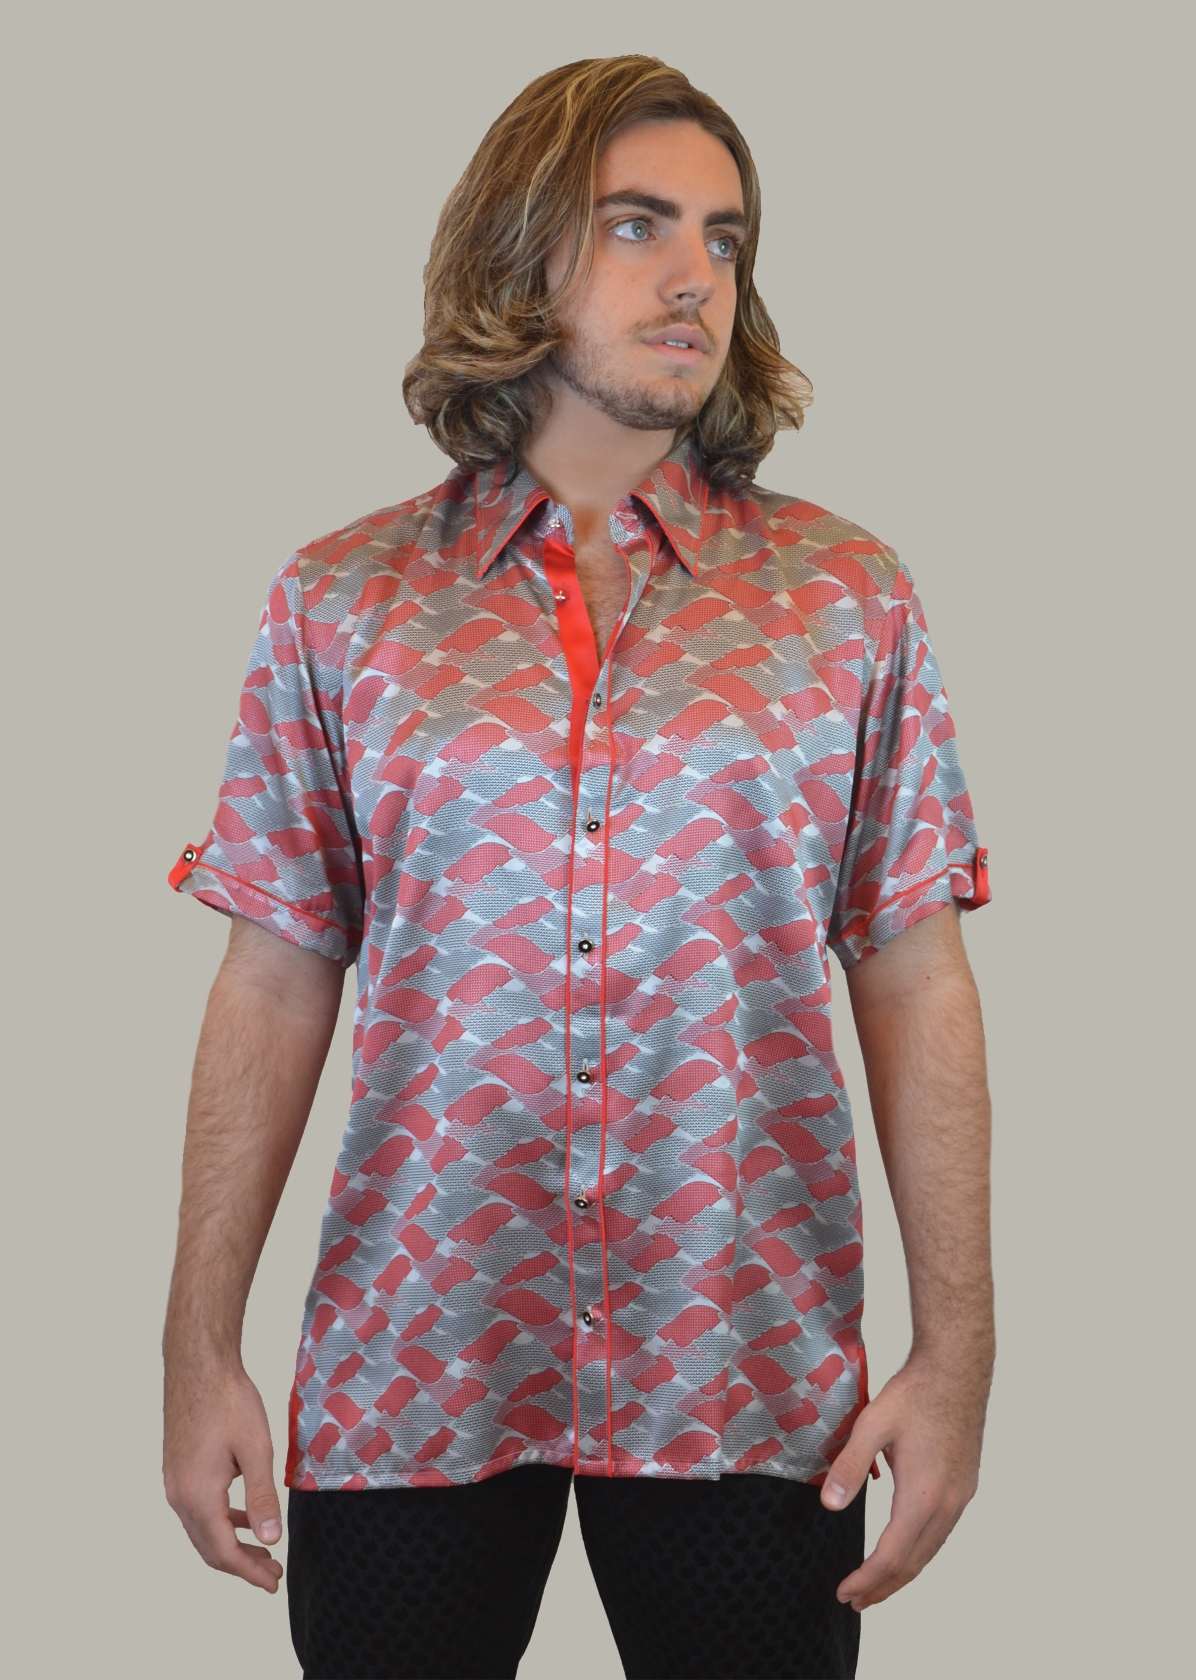 Fabio Caviglia Pattern short sleeve shirt in 100% silk